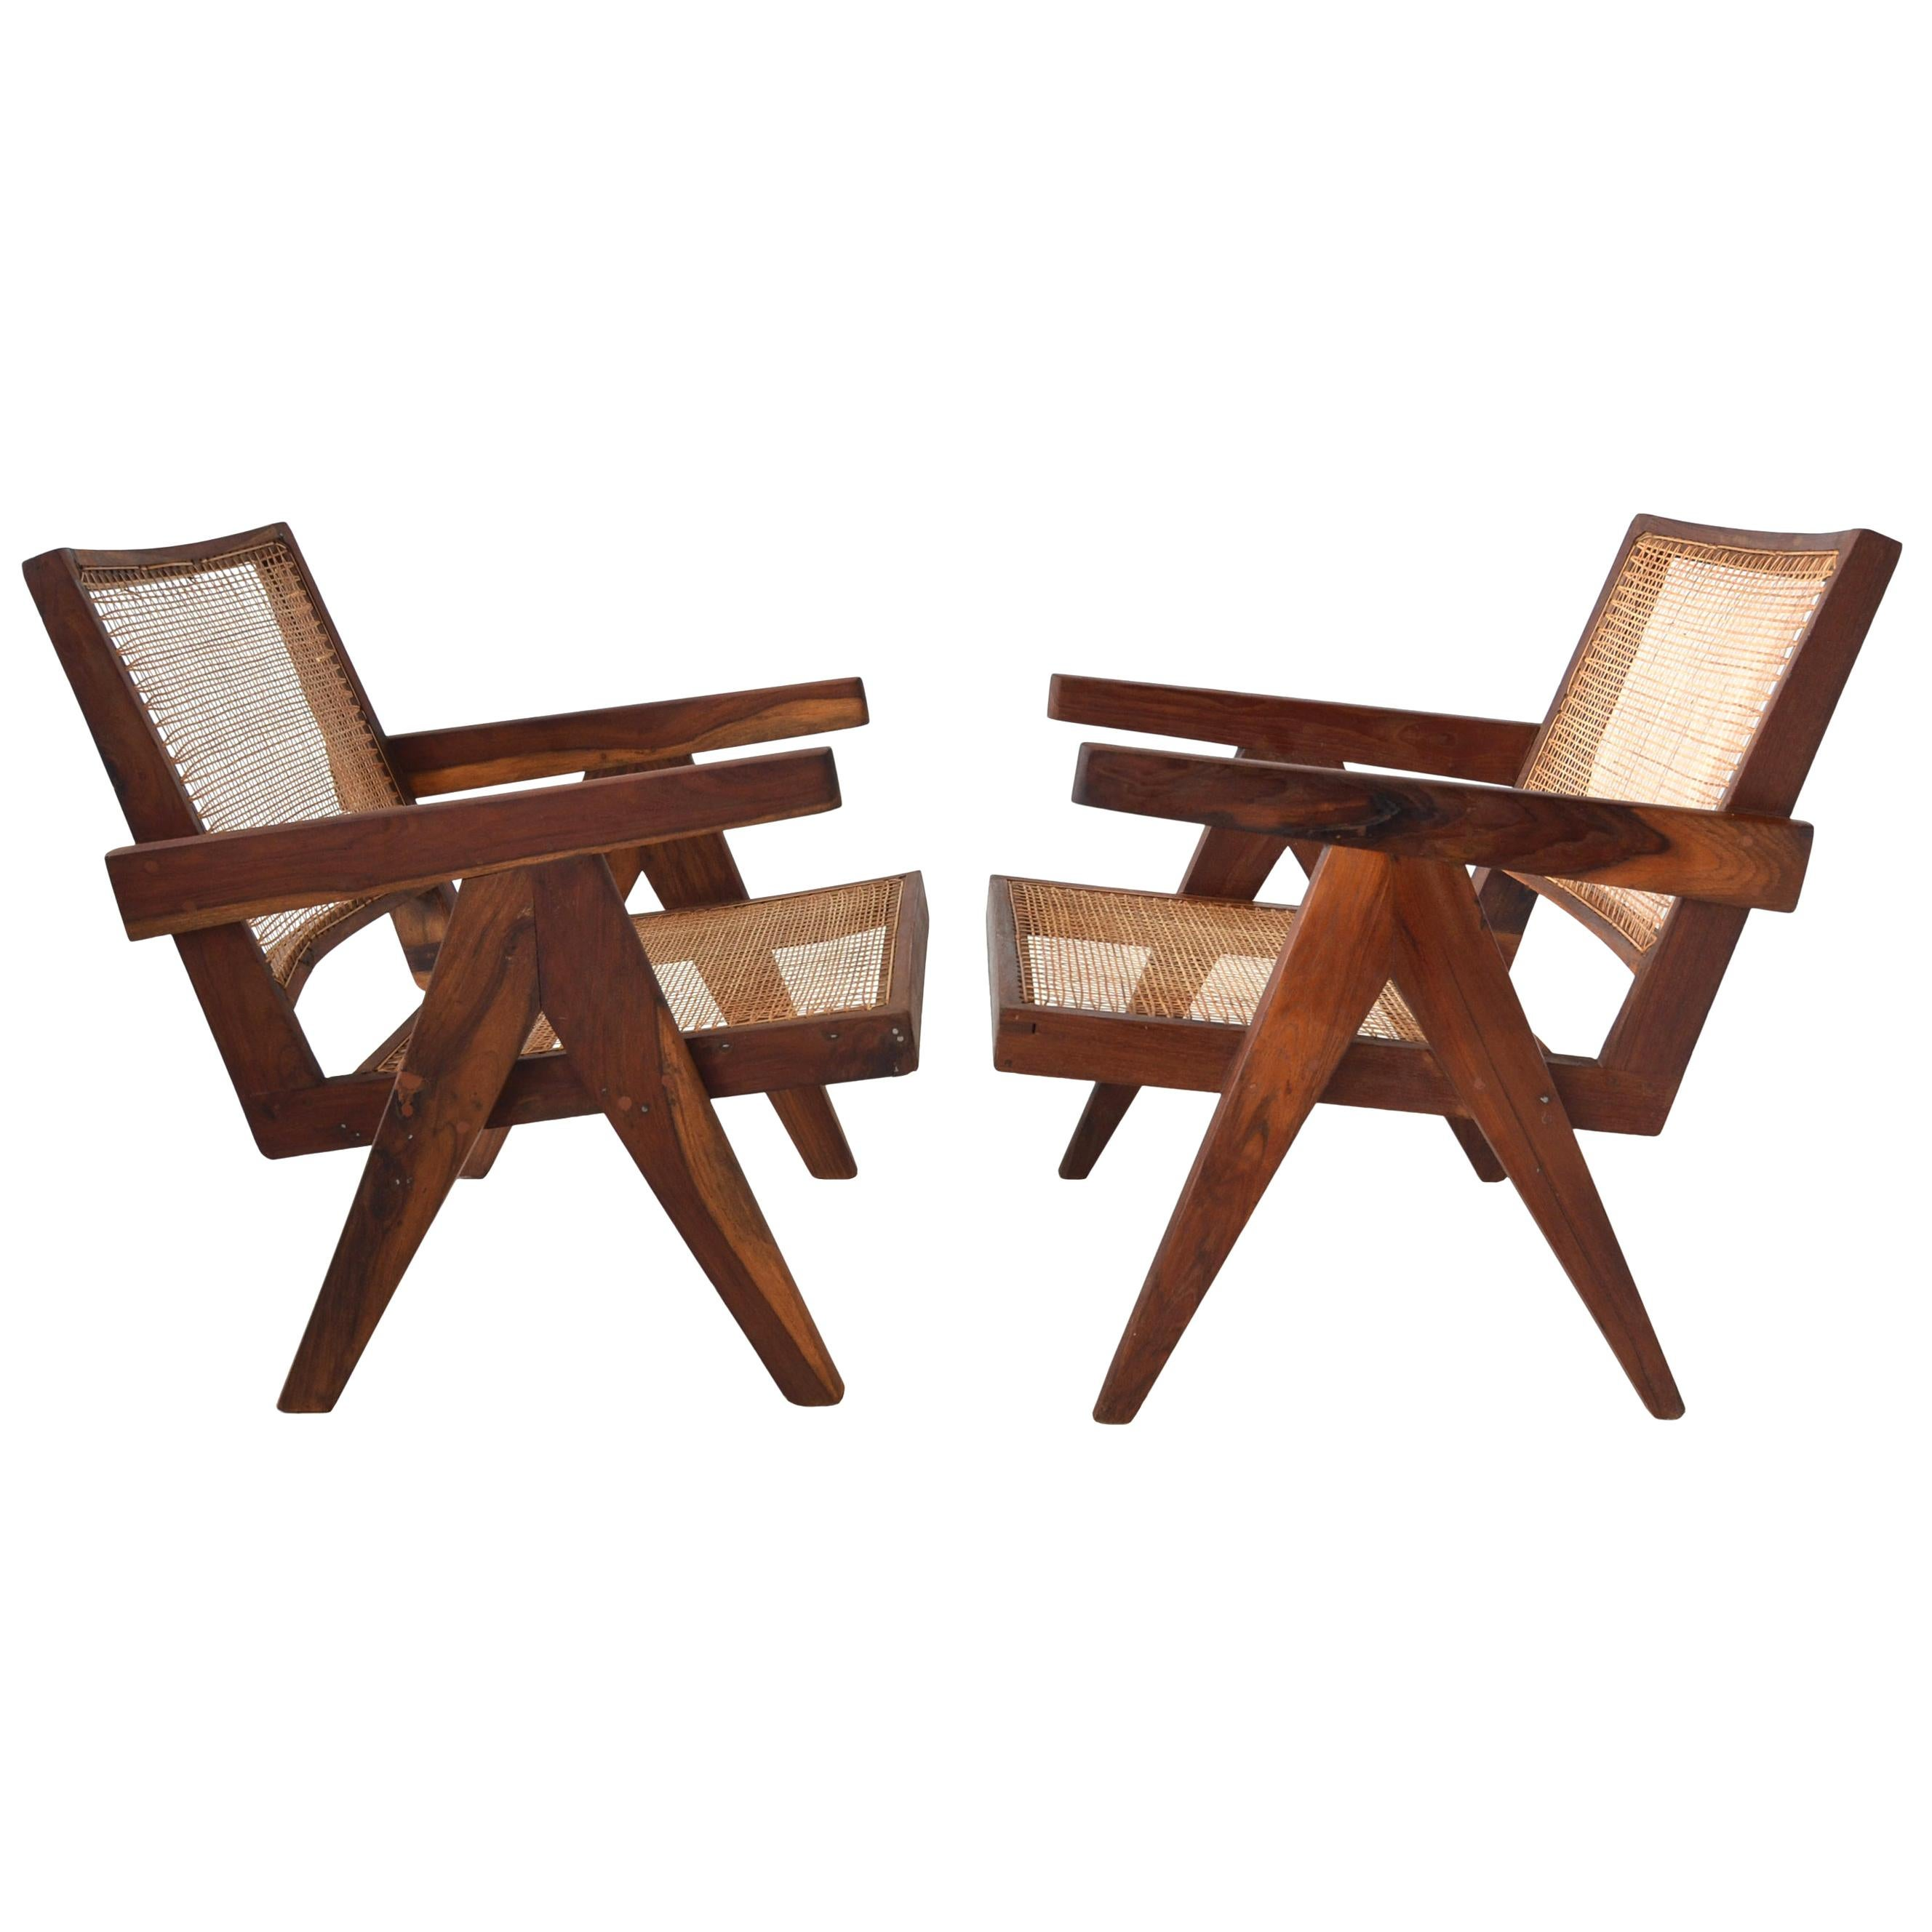 Pair of Pierre Jeanneret Low Chairs